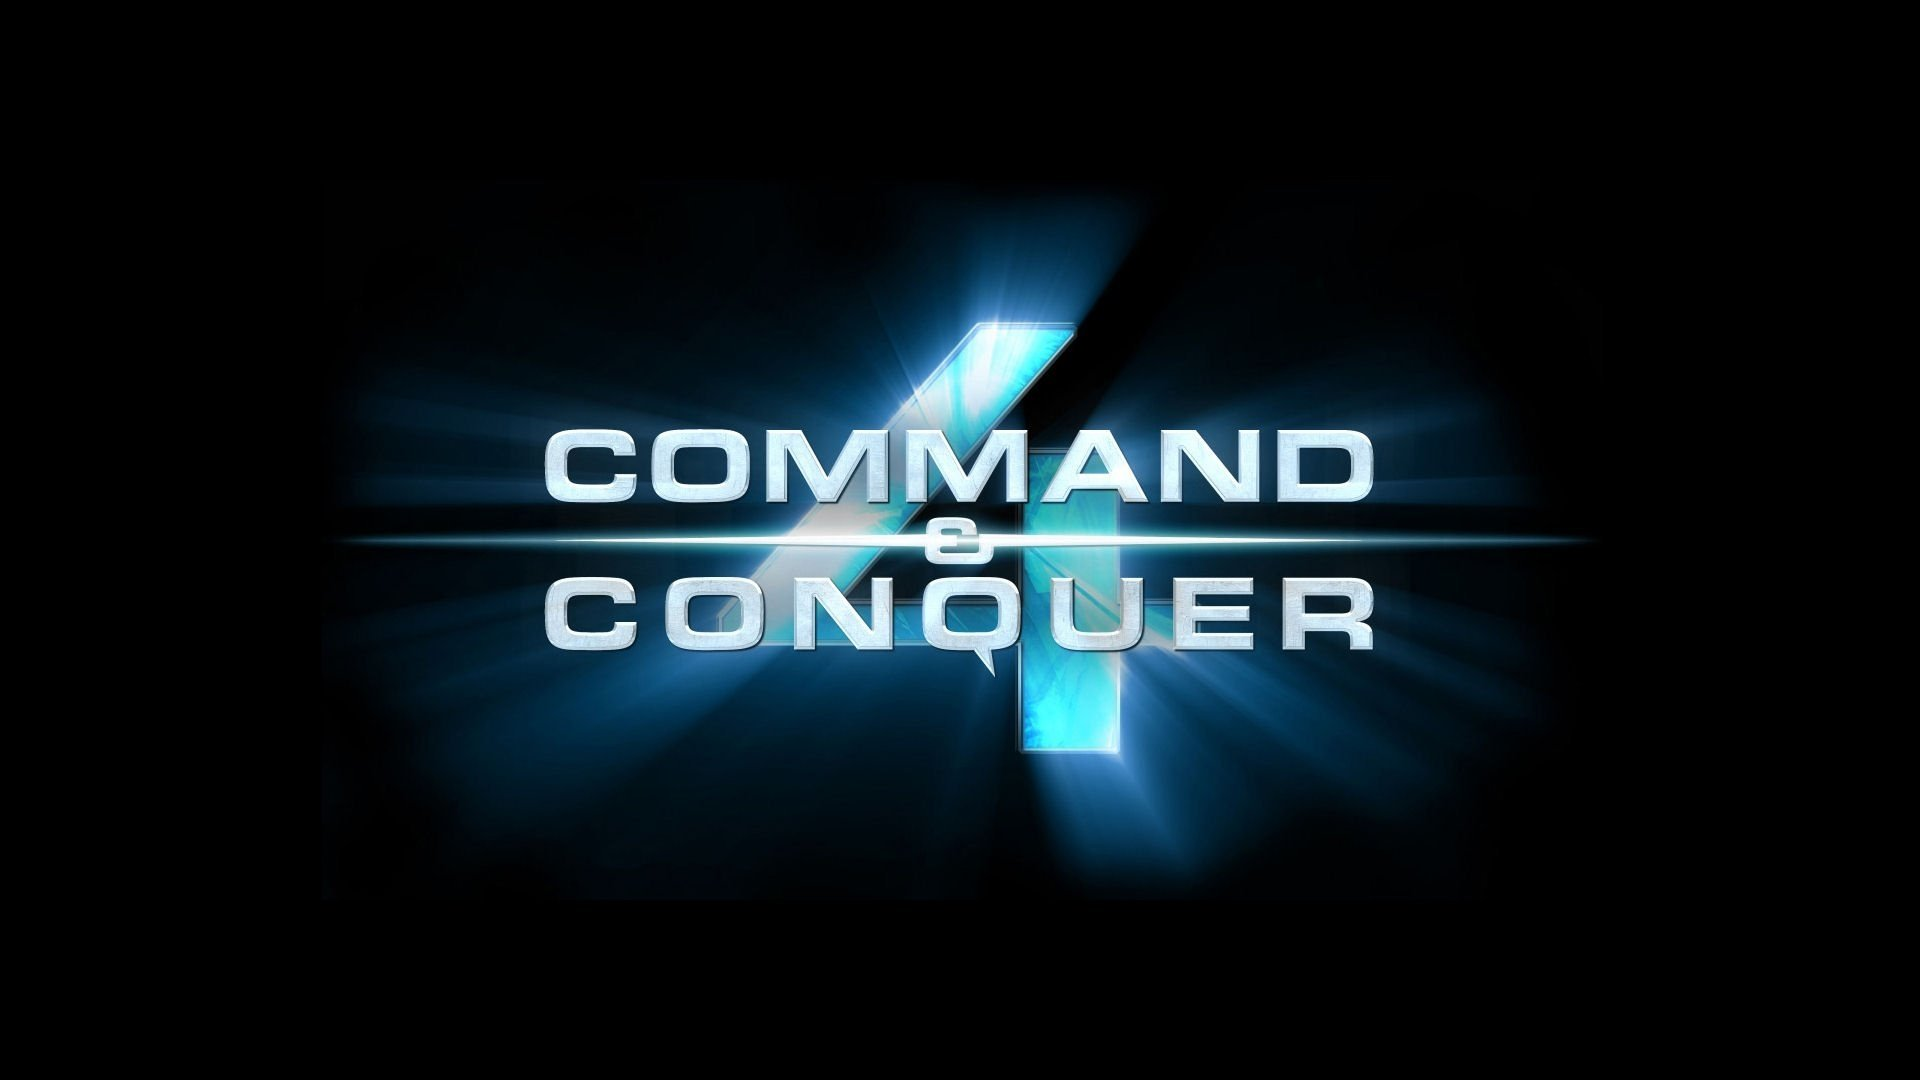 Download command and conquer 4 offline crack managefree.